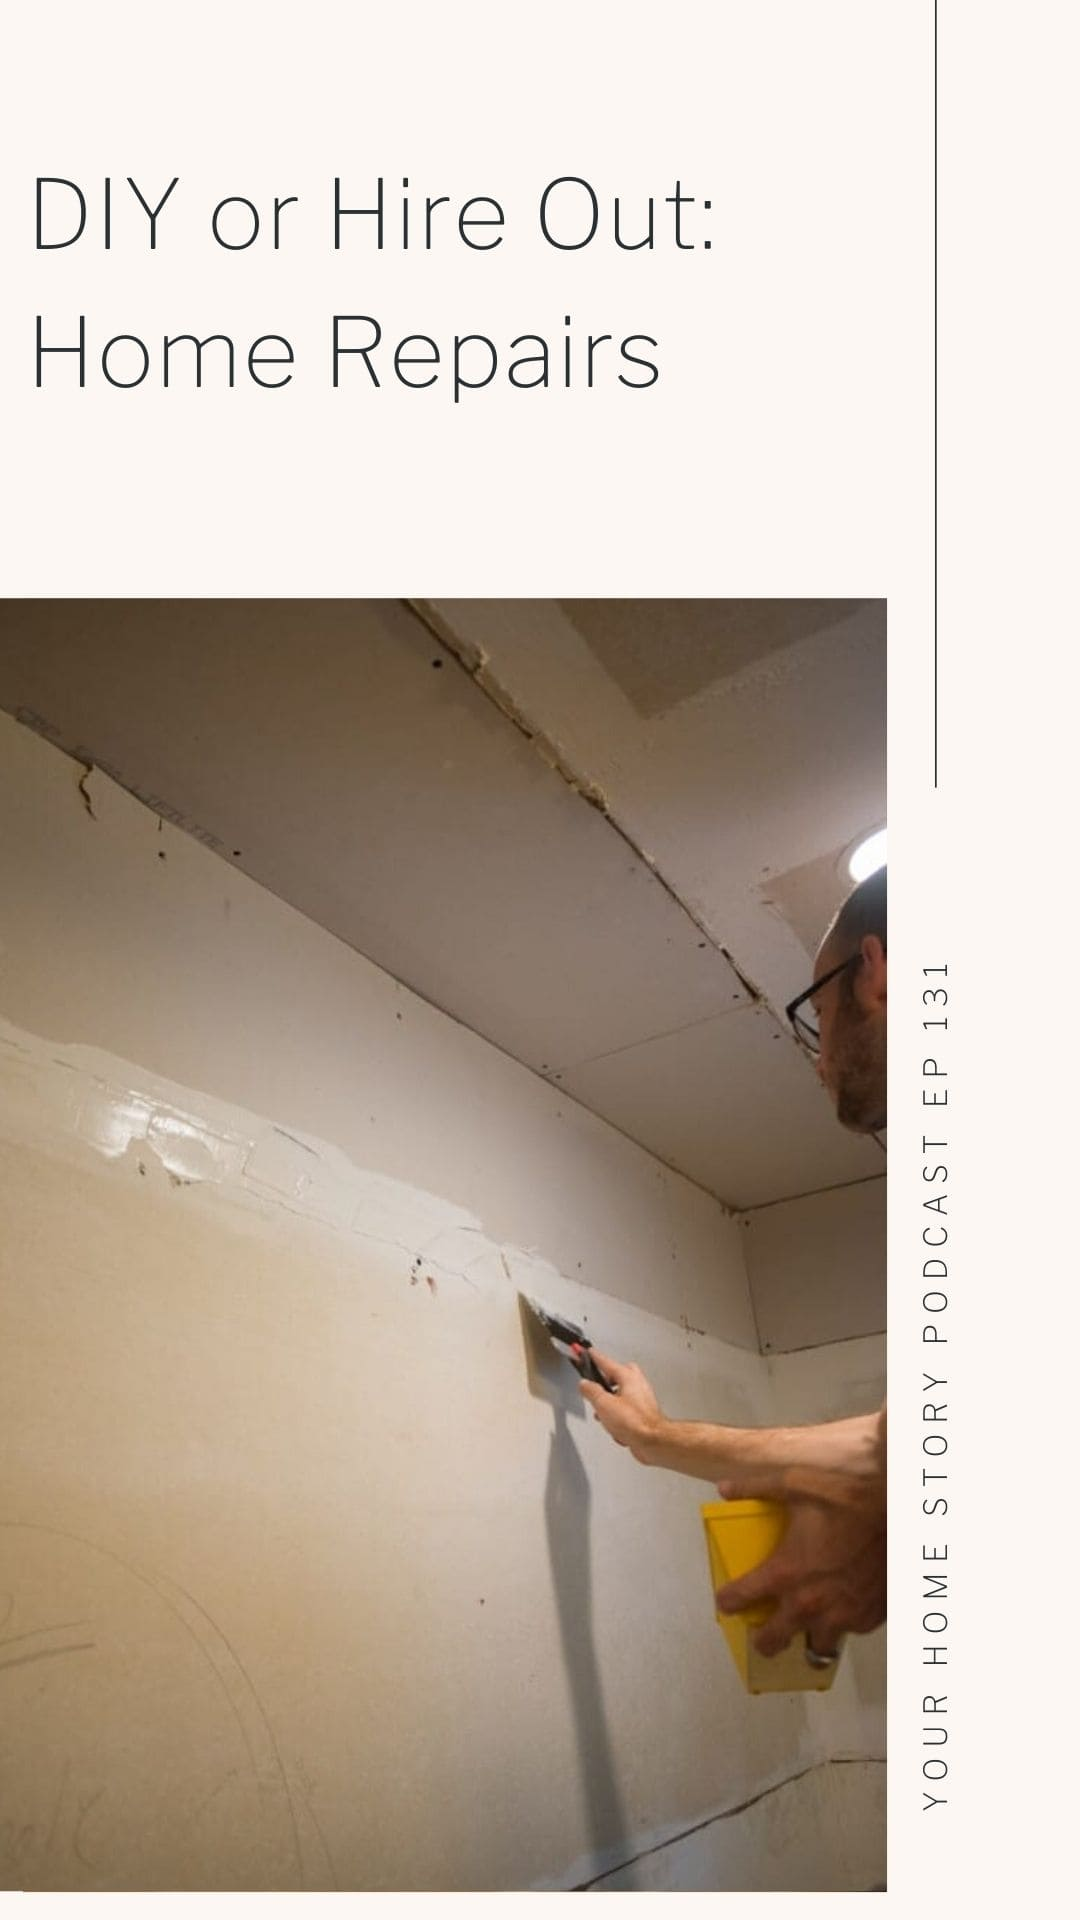 Home Repairs : DIY or Hire Out. Showing man mudding wall. .